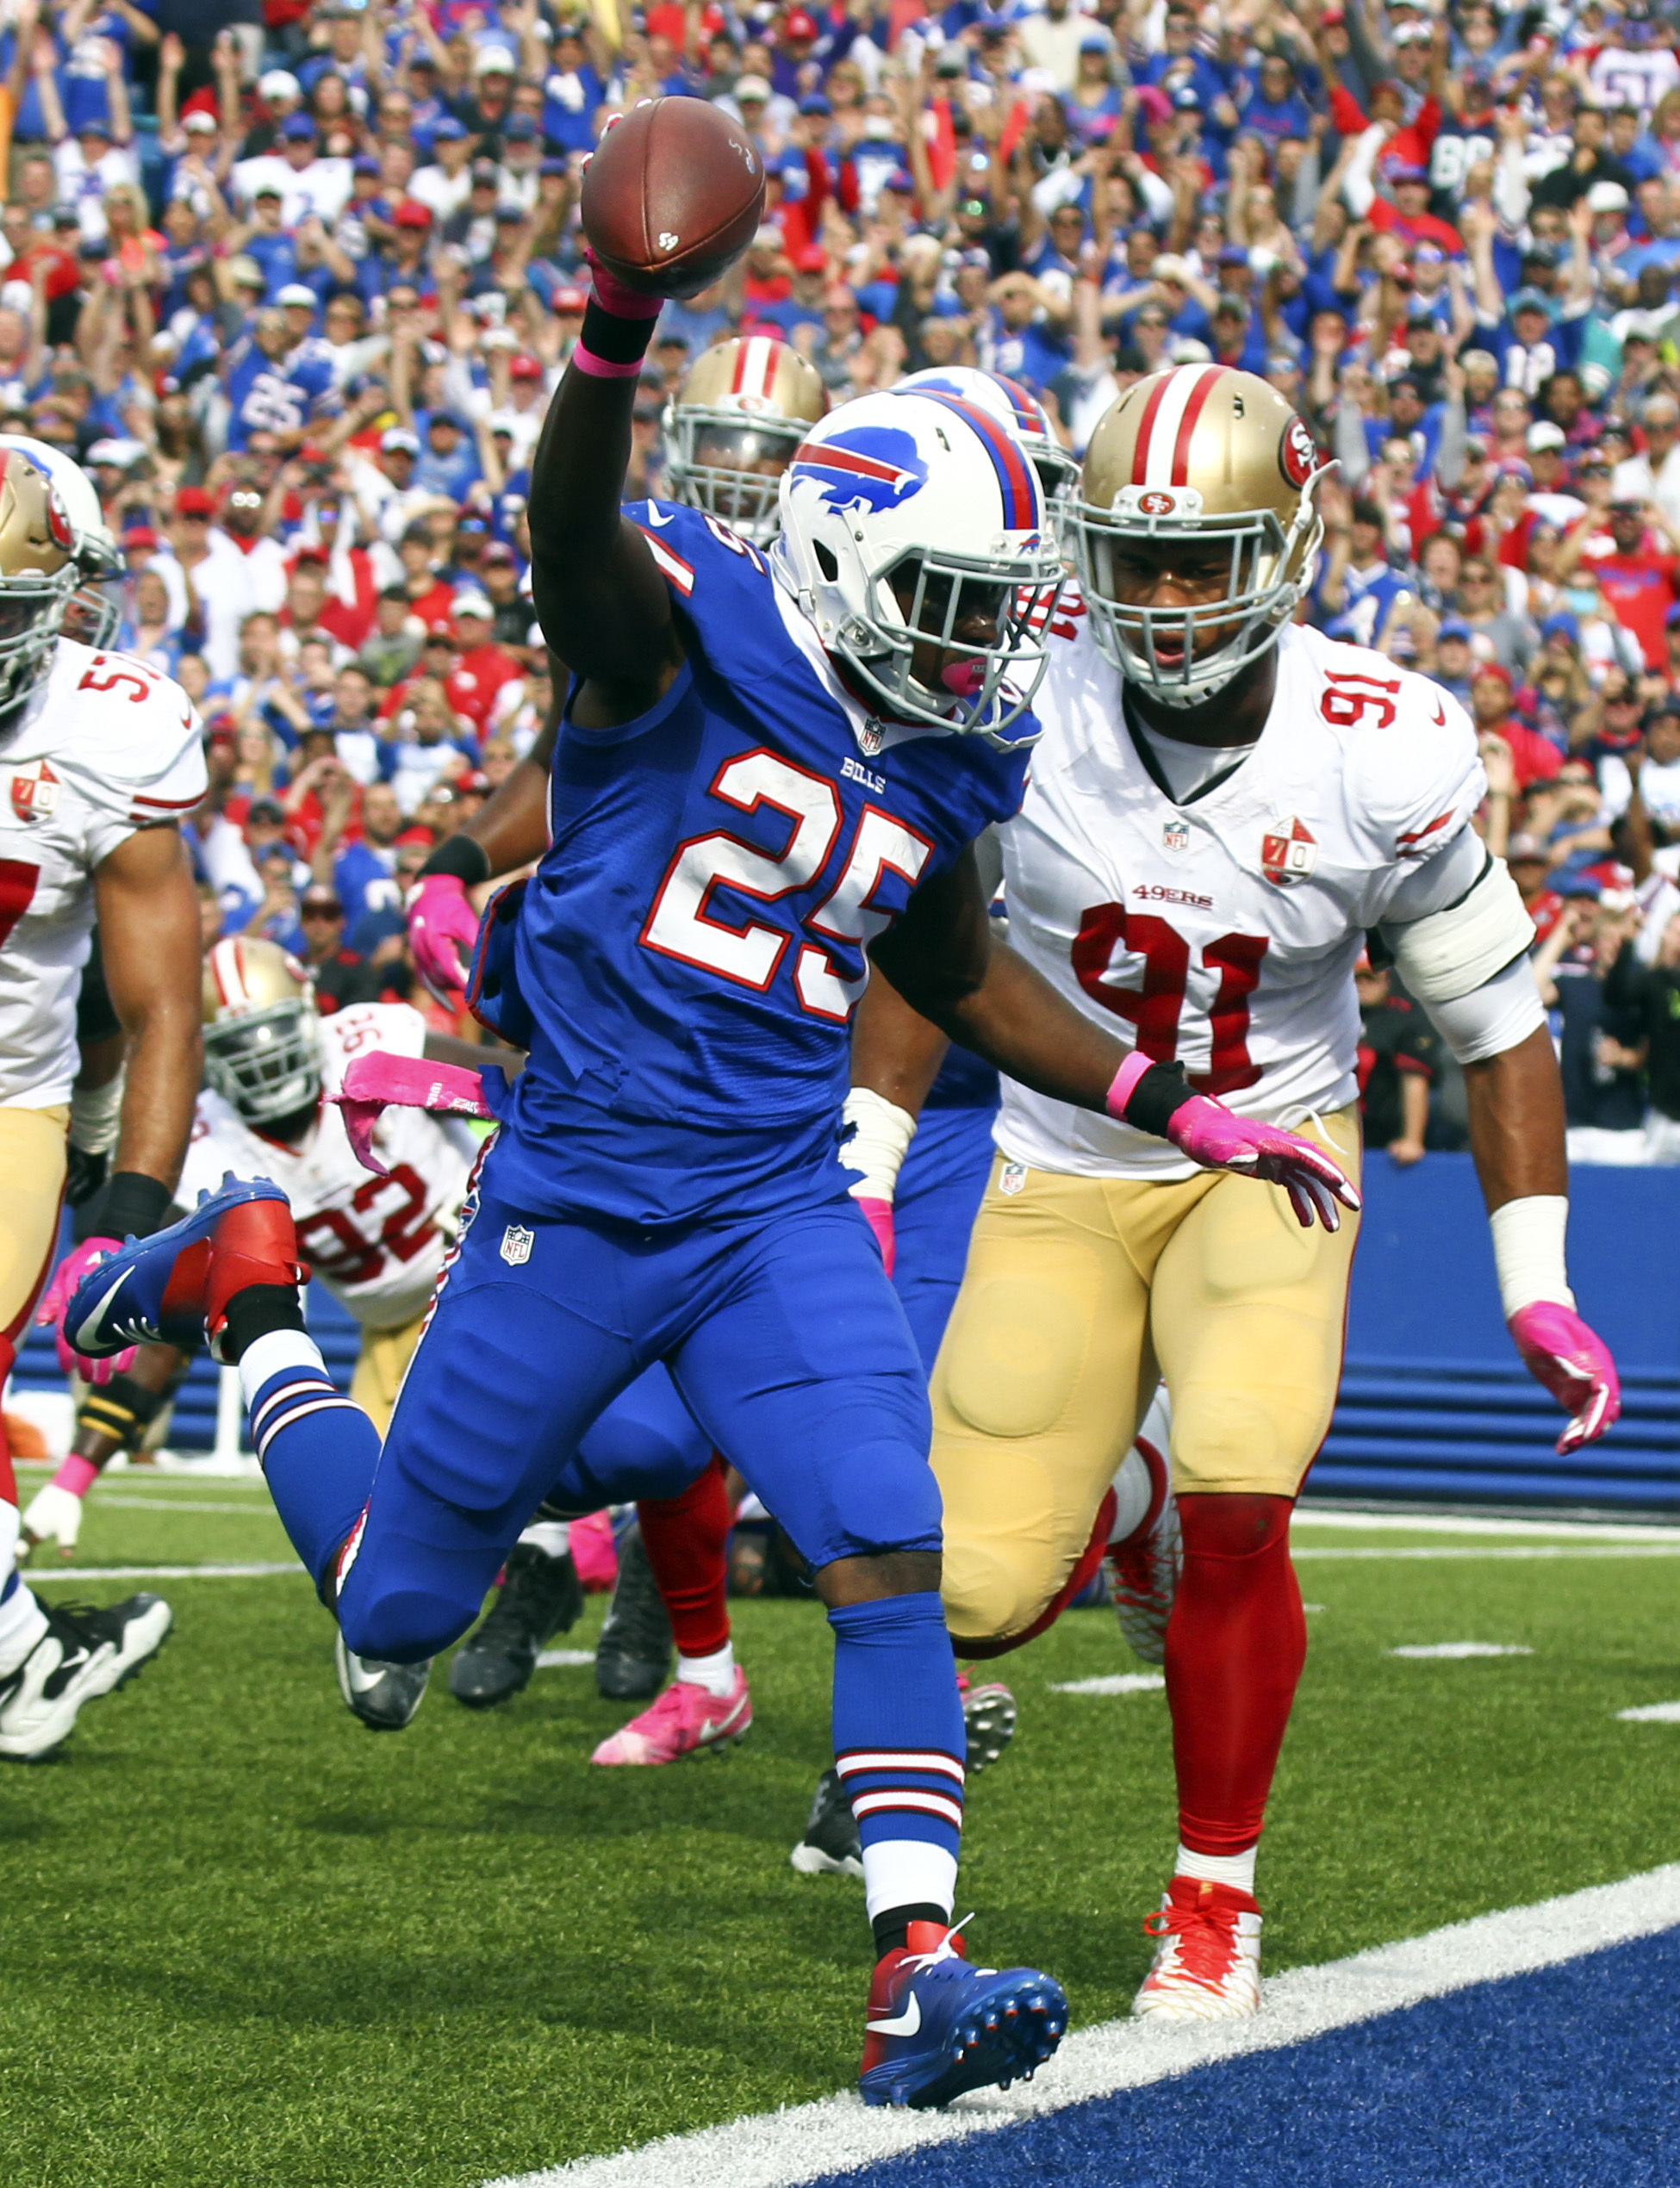 Buffalo Bills running back LeSean McCoy (25) scores a touchdown in front of San Francisco 49ers defensive end Arik Armstead (91) during the first half of an NFL football game on Sunday, Oct. 16, 2016, in Orchard Park, N.Y. (AP Photo/Jeffrey T. Barnes)